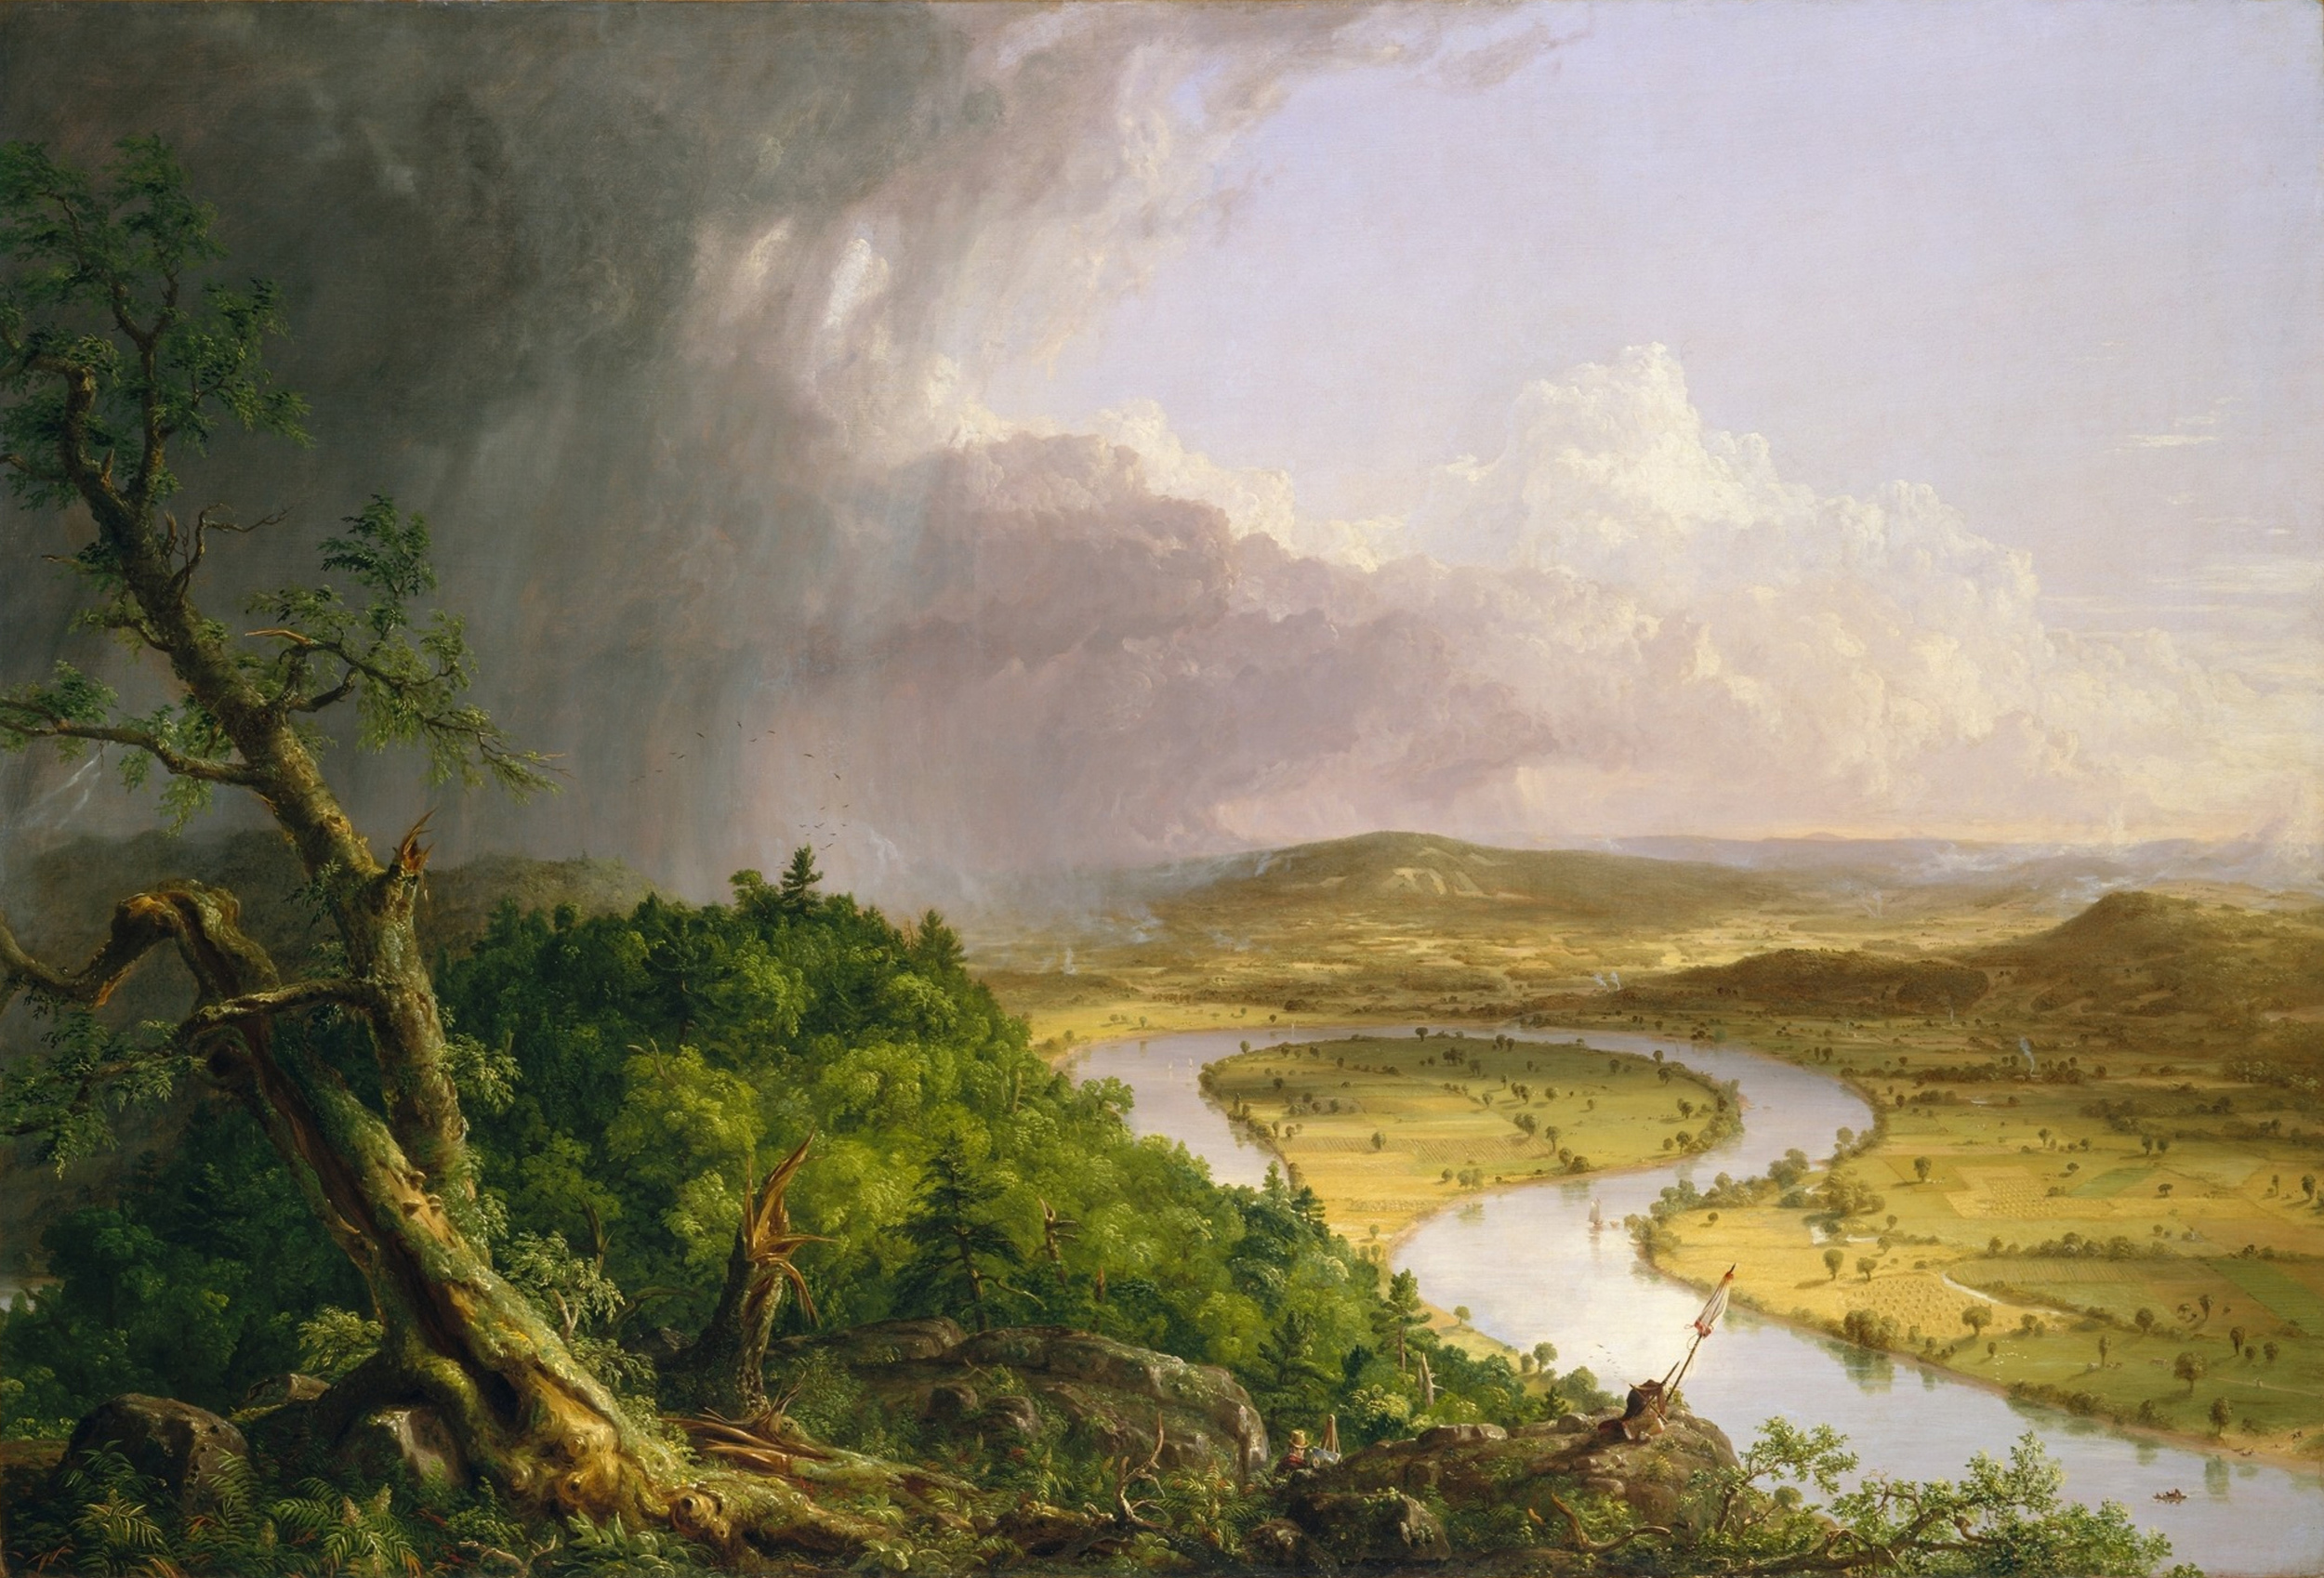 Thomas Cole,  The Oxbow, View from Mount Holyoke, Northampton, Massachusetts, after a Thunderstorm , 1836, The Metropolitan Museum of Art, New York.